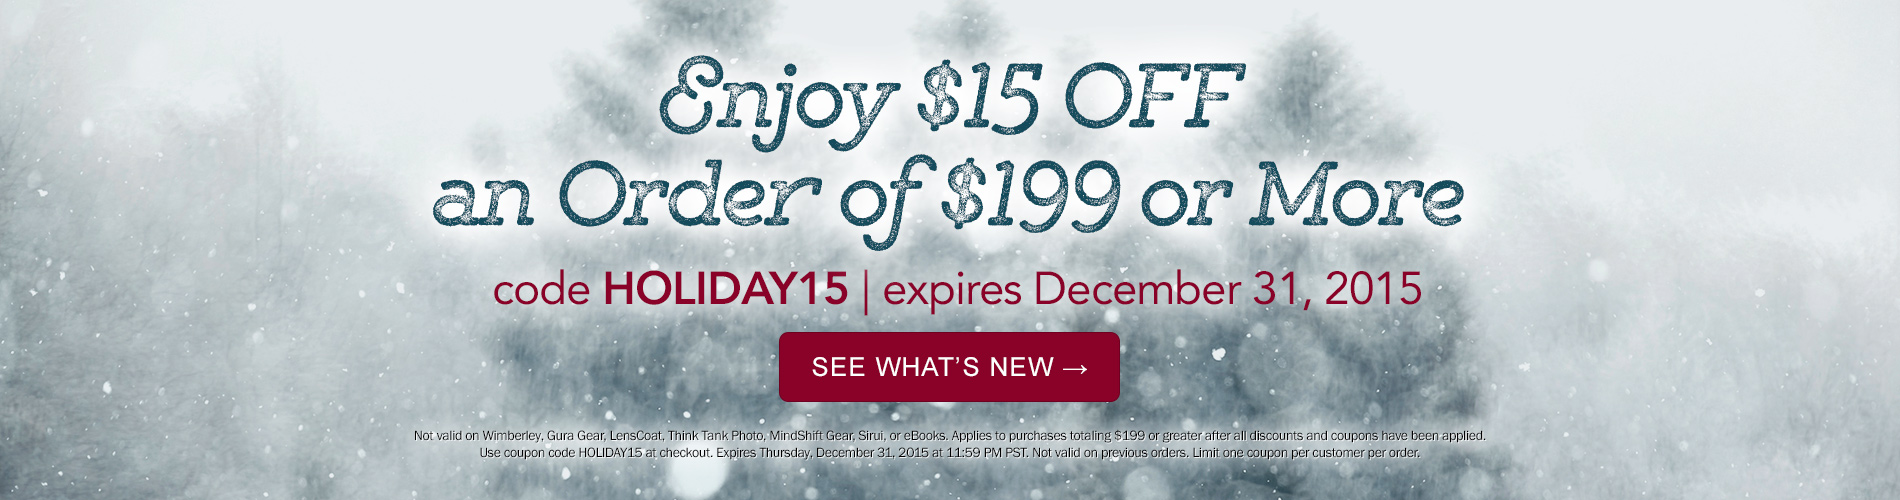 Enjoy $15 OFF an Order of $199 or More! Use code HOLIDAY15 now through December 31, 2015. Exclusions apply.